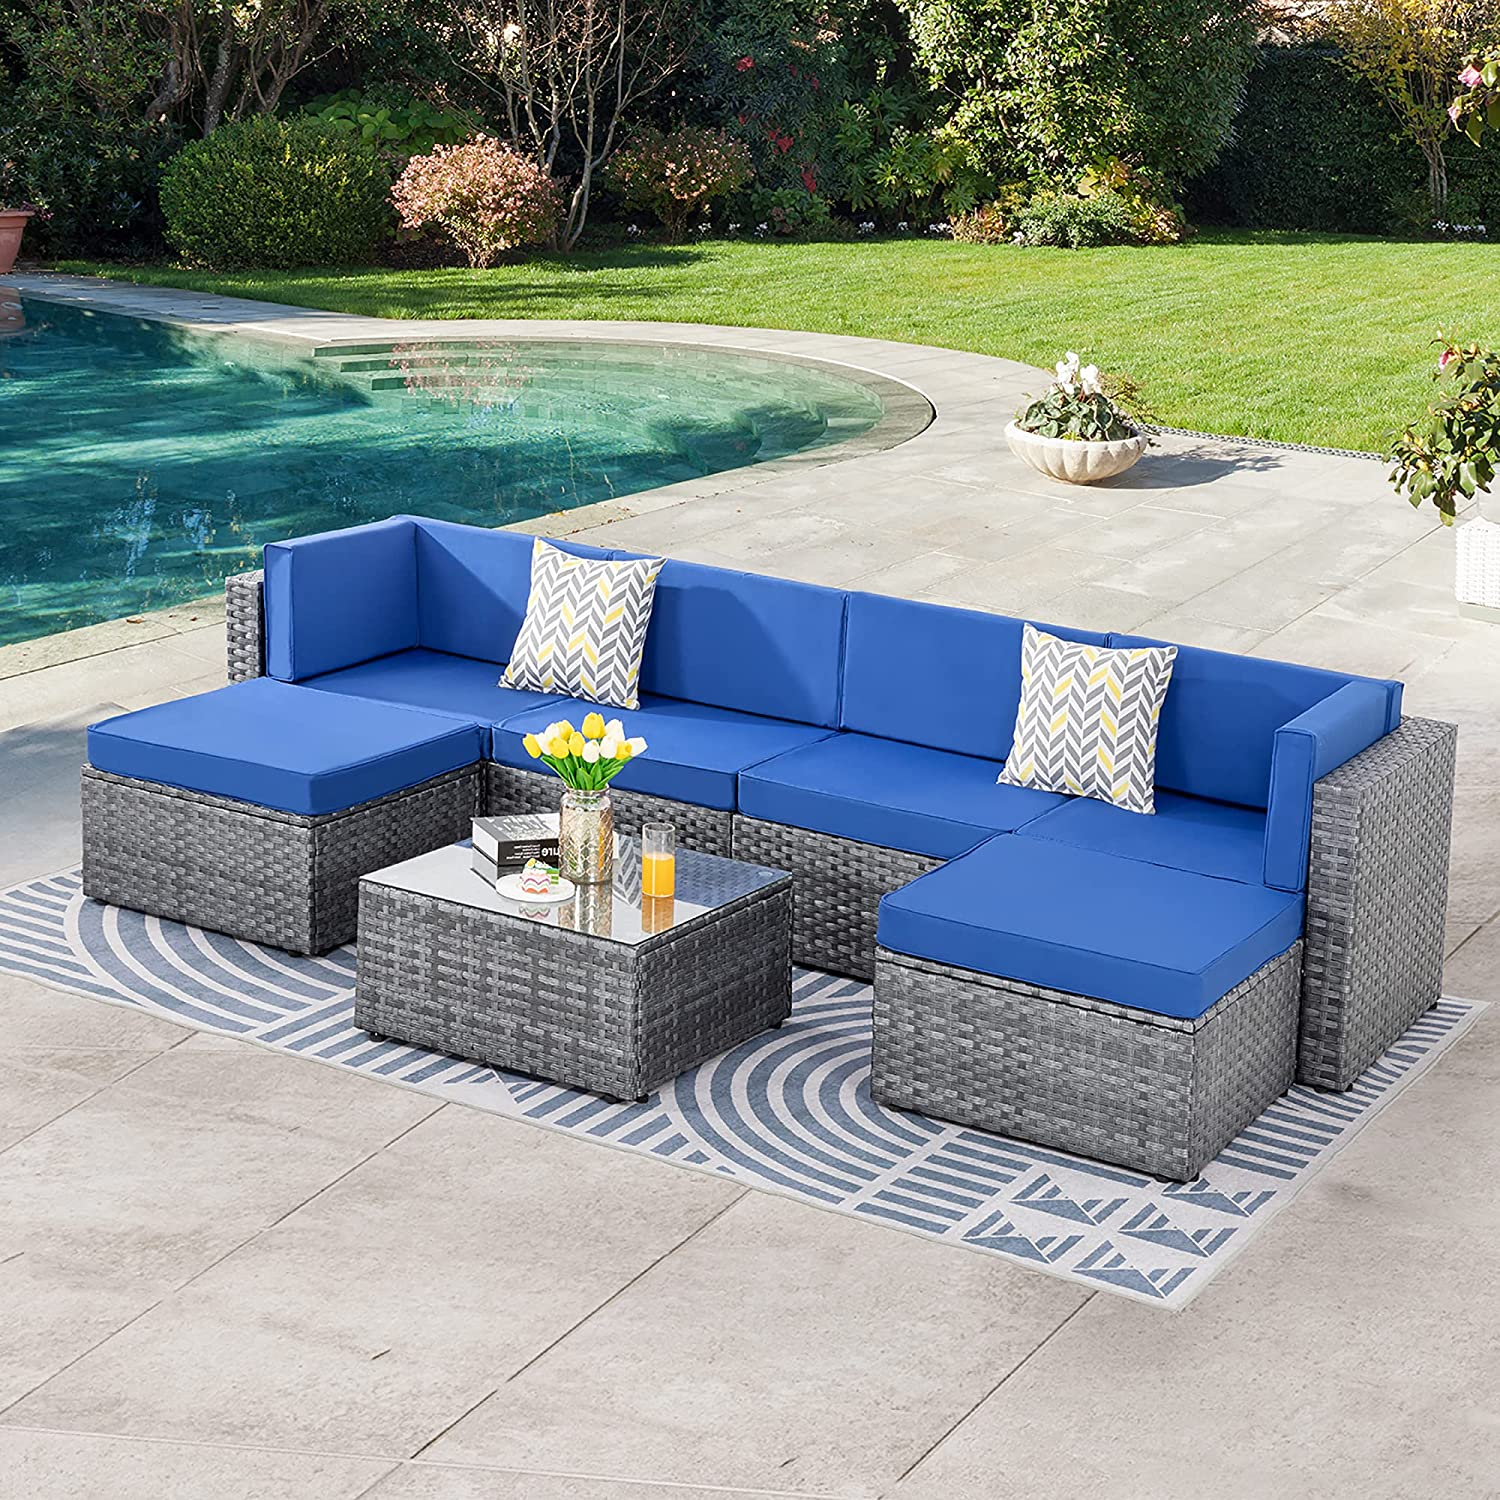 SUNLEI 7pcs Patio Outdoor Furniture Sets Conversation Set,Low Back All-Weather Rattan Sectional Sofa with Tea Table&Washable Couch Cushions&Ottoman(Silver Rattan)(Royal Blue)